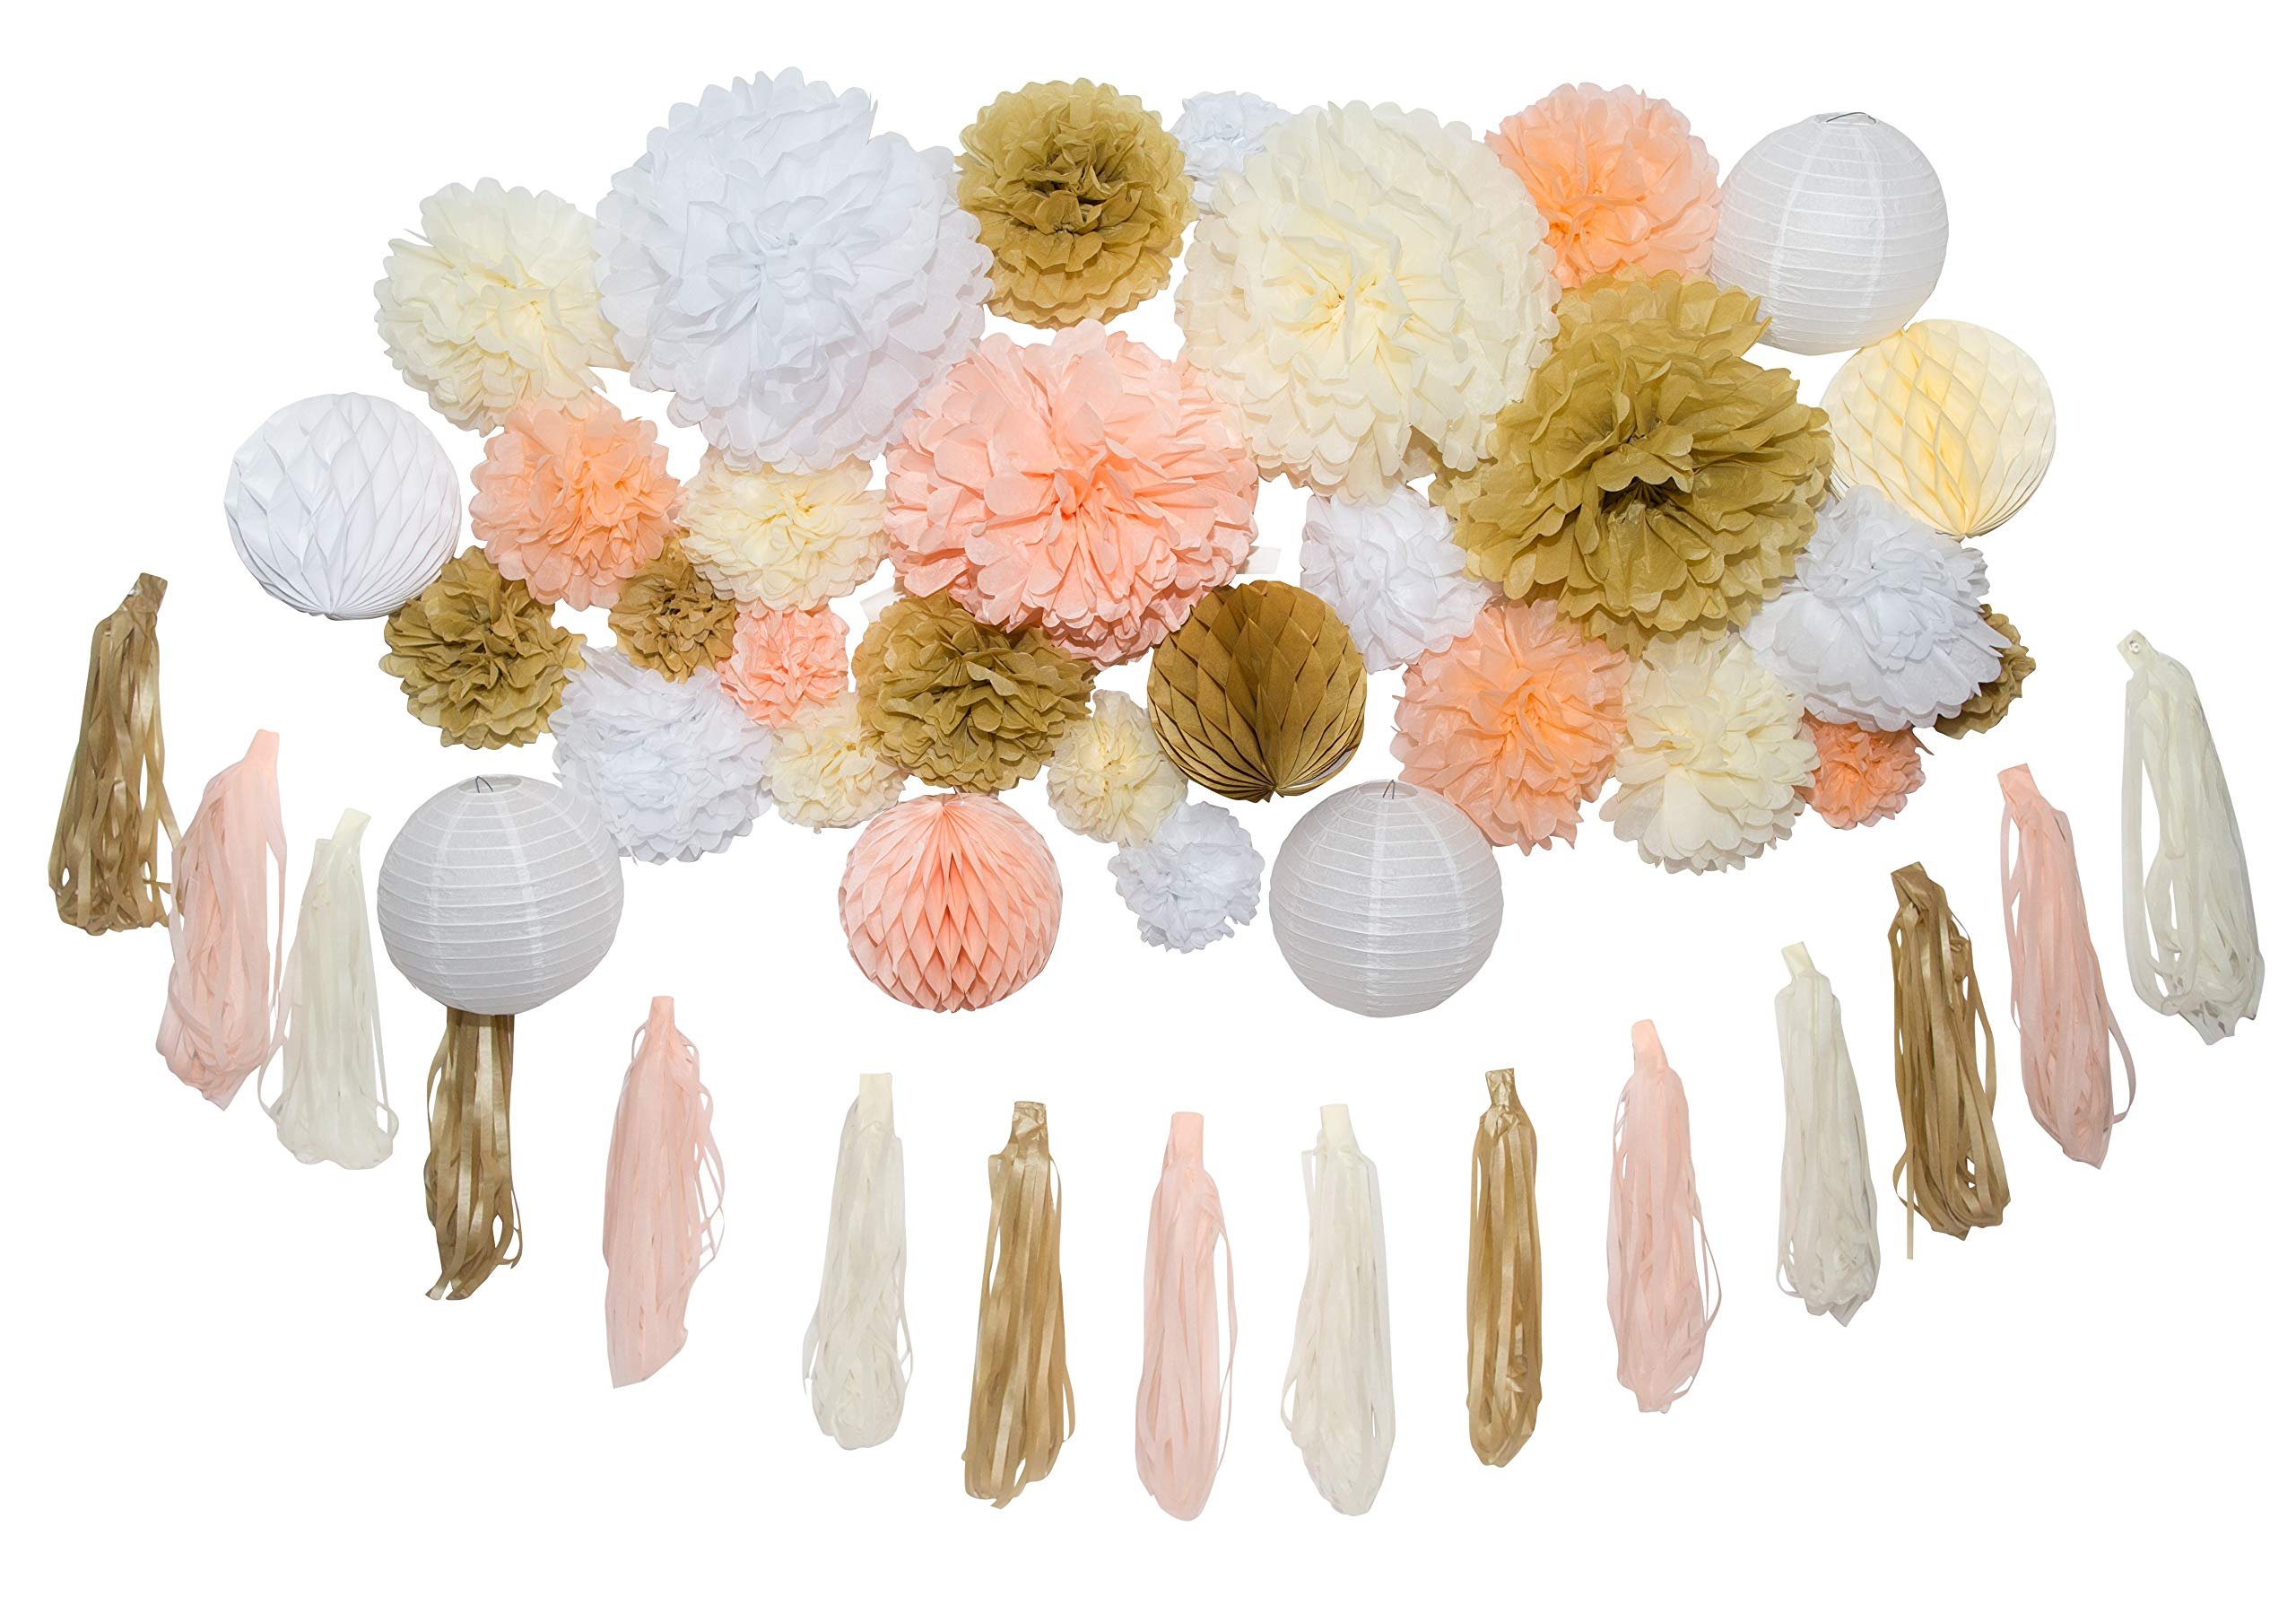 46 Pcs Tissue Paper Pom Poms Tassel Kit Paper Flowers Paper Lanterns and Honeycomb Balls for Wedding Bridal Shower Birthday Party Baby Nursery Decor Gold Champagne Peach Ivory White (14'', 10'', 8'', 6'')